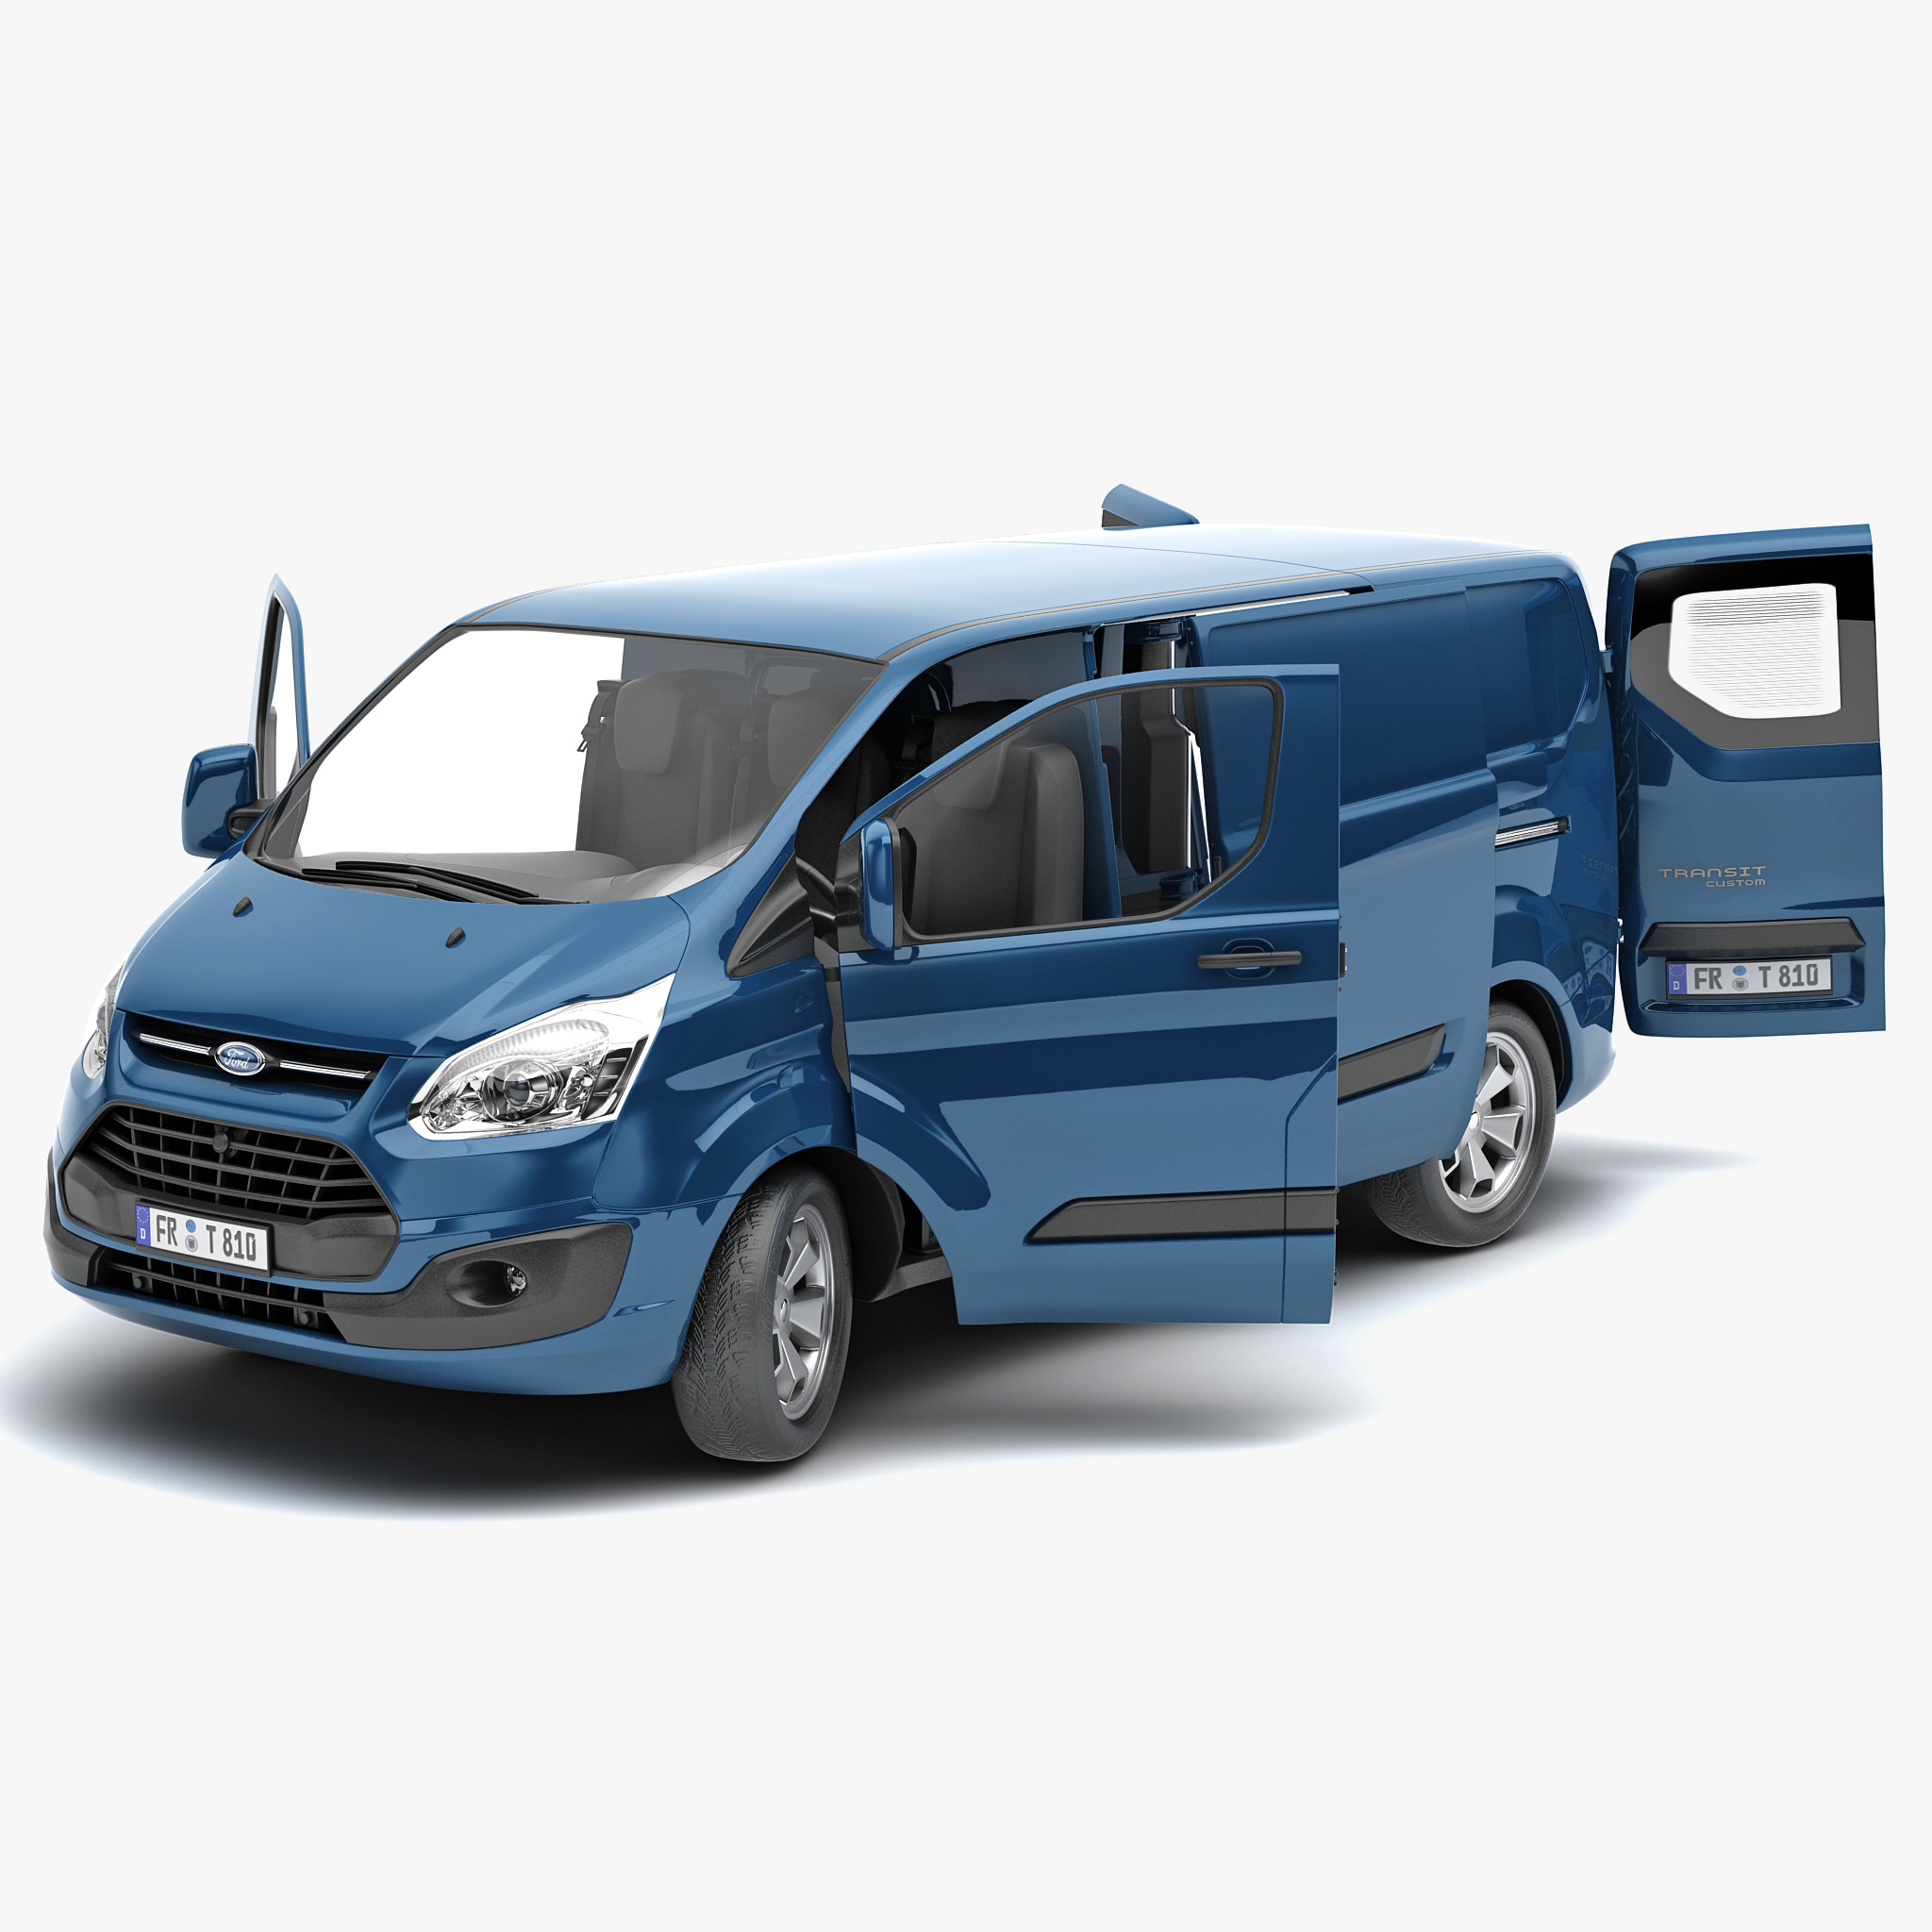 Ford Transit 2013 Rigged_2.jpg